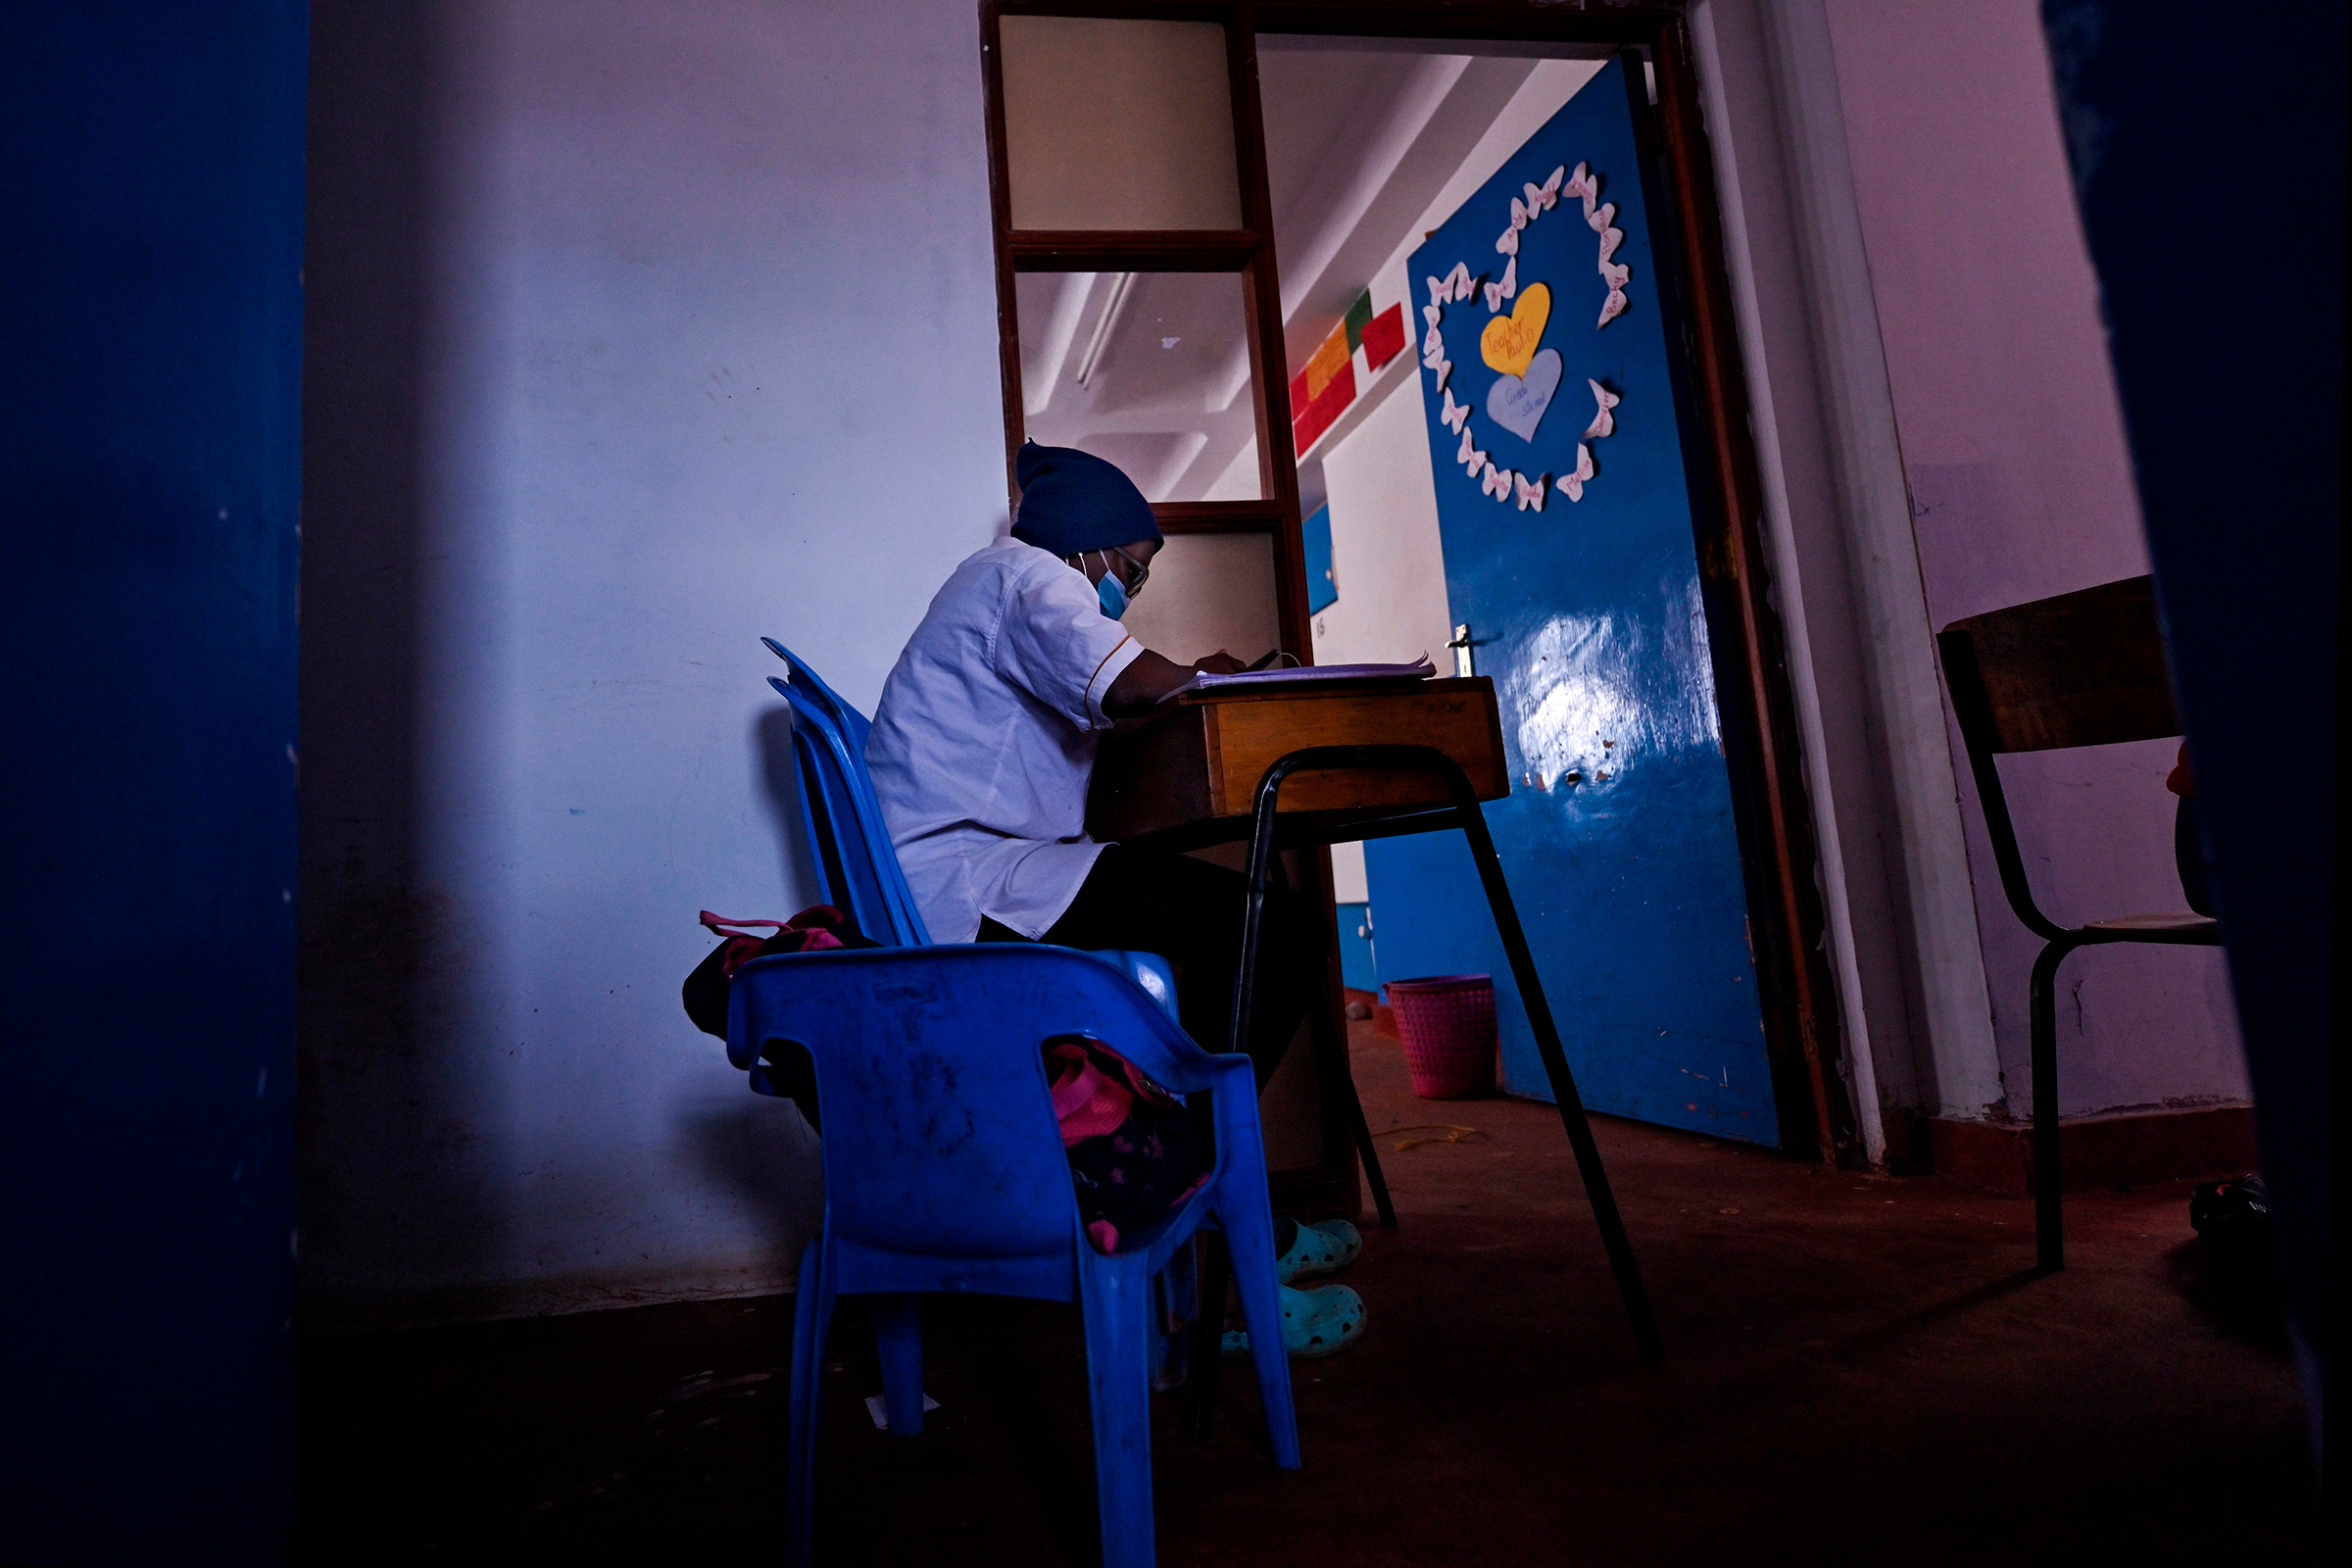 A student sits at her desk at Kibera School for Girls in Kibera, Nairobi, kenya, on Aug. 7, 2020.